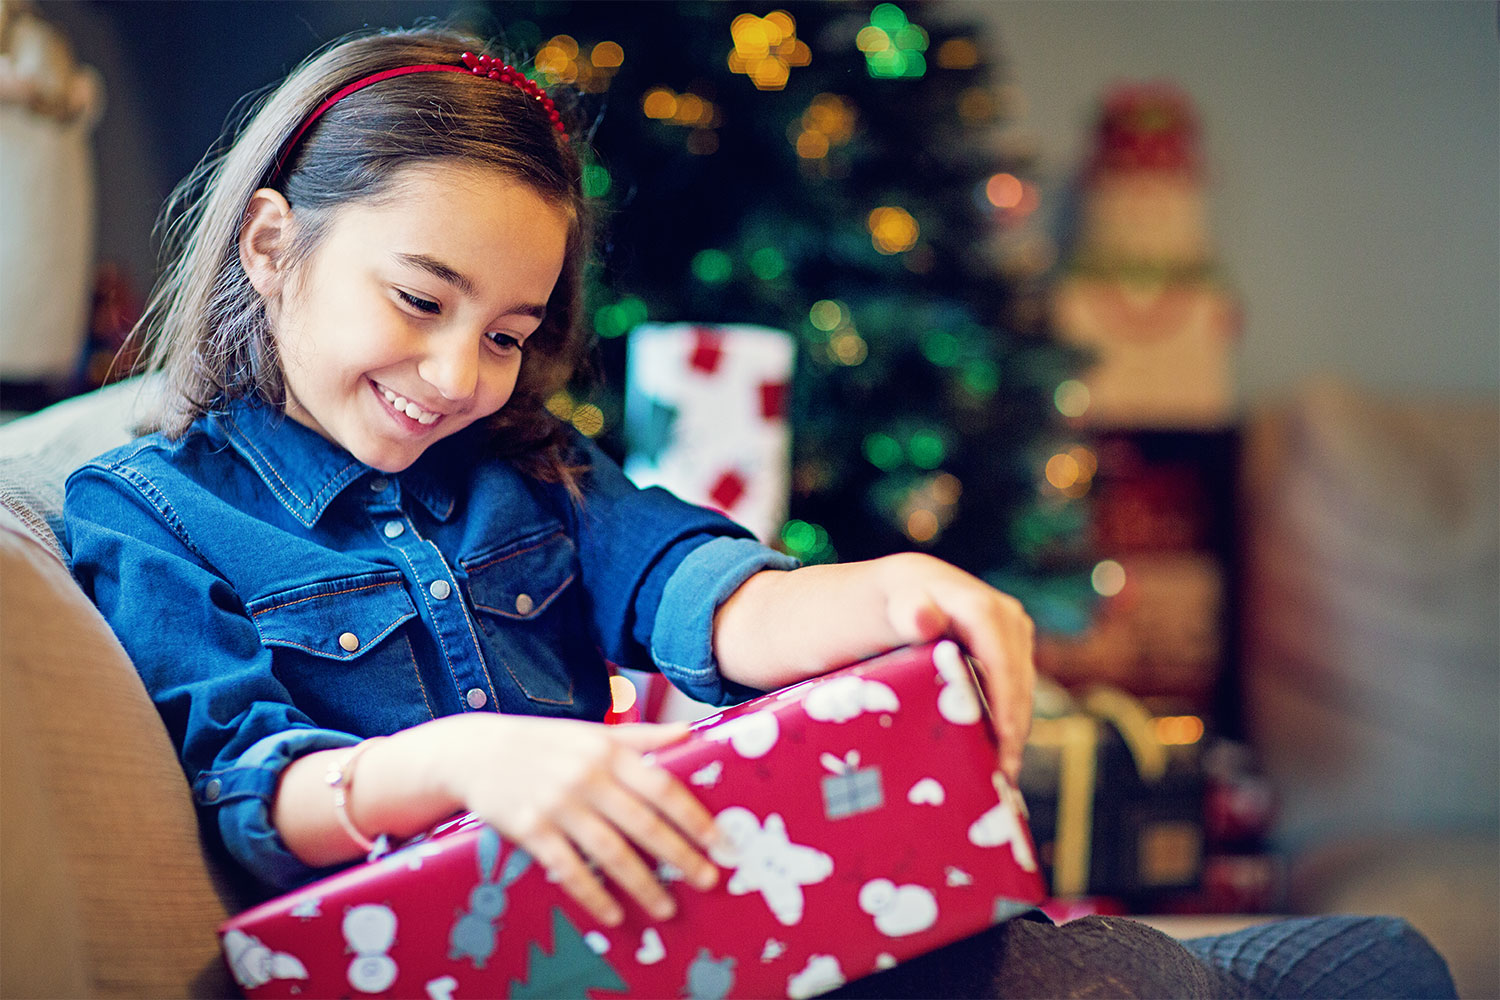 These are the top 15 toys your kids will want for Christmas